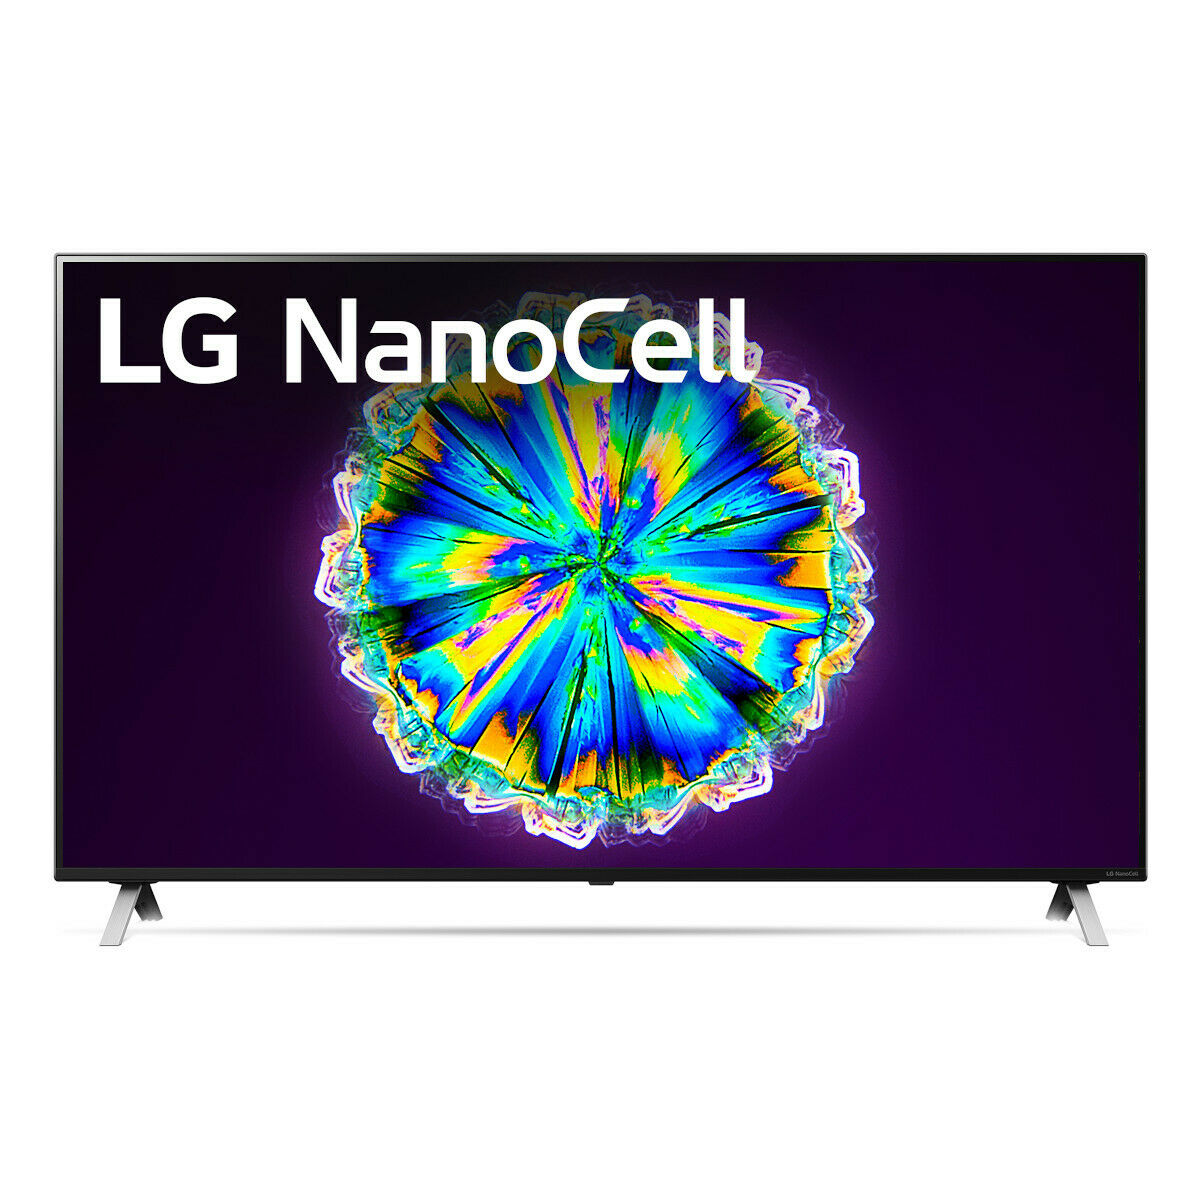 LG 55NANO90UNA 55 4K Nano UHD ThinQ AI LED TV with A7 Gen 3 Intelligent. Available Now for 946.99